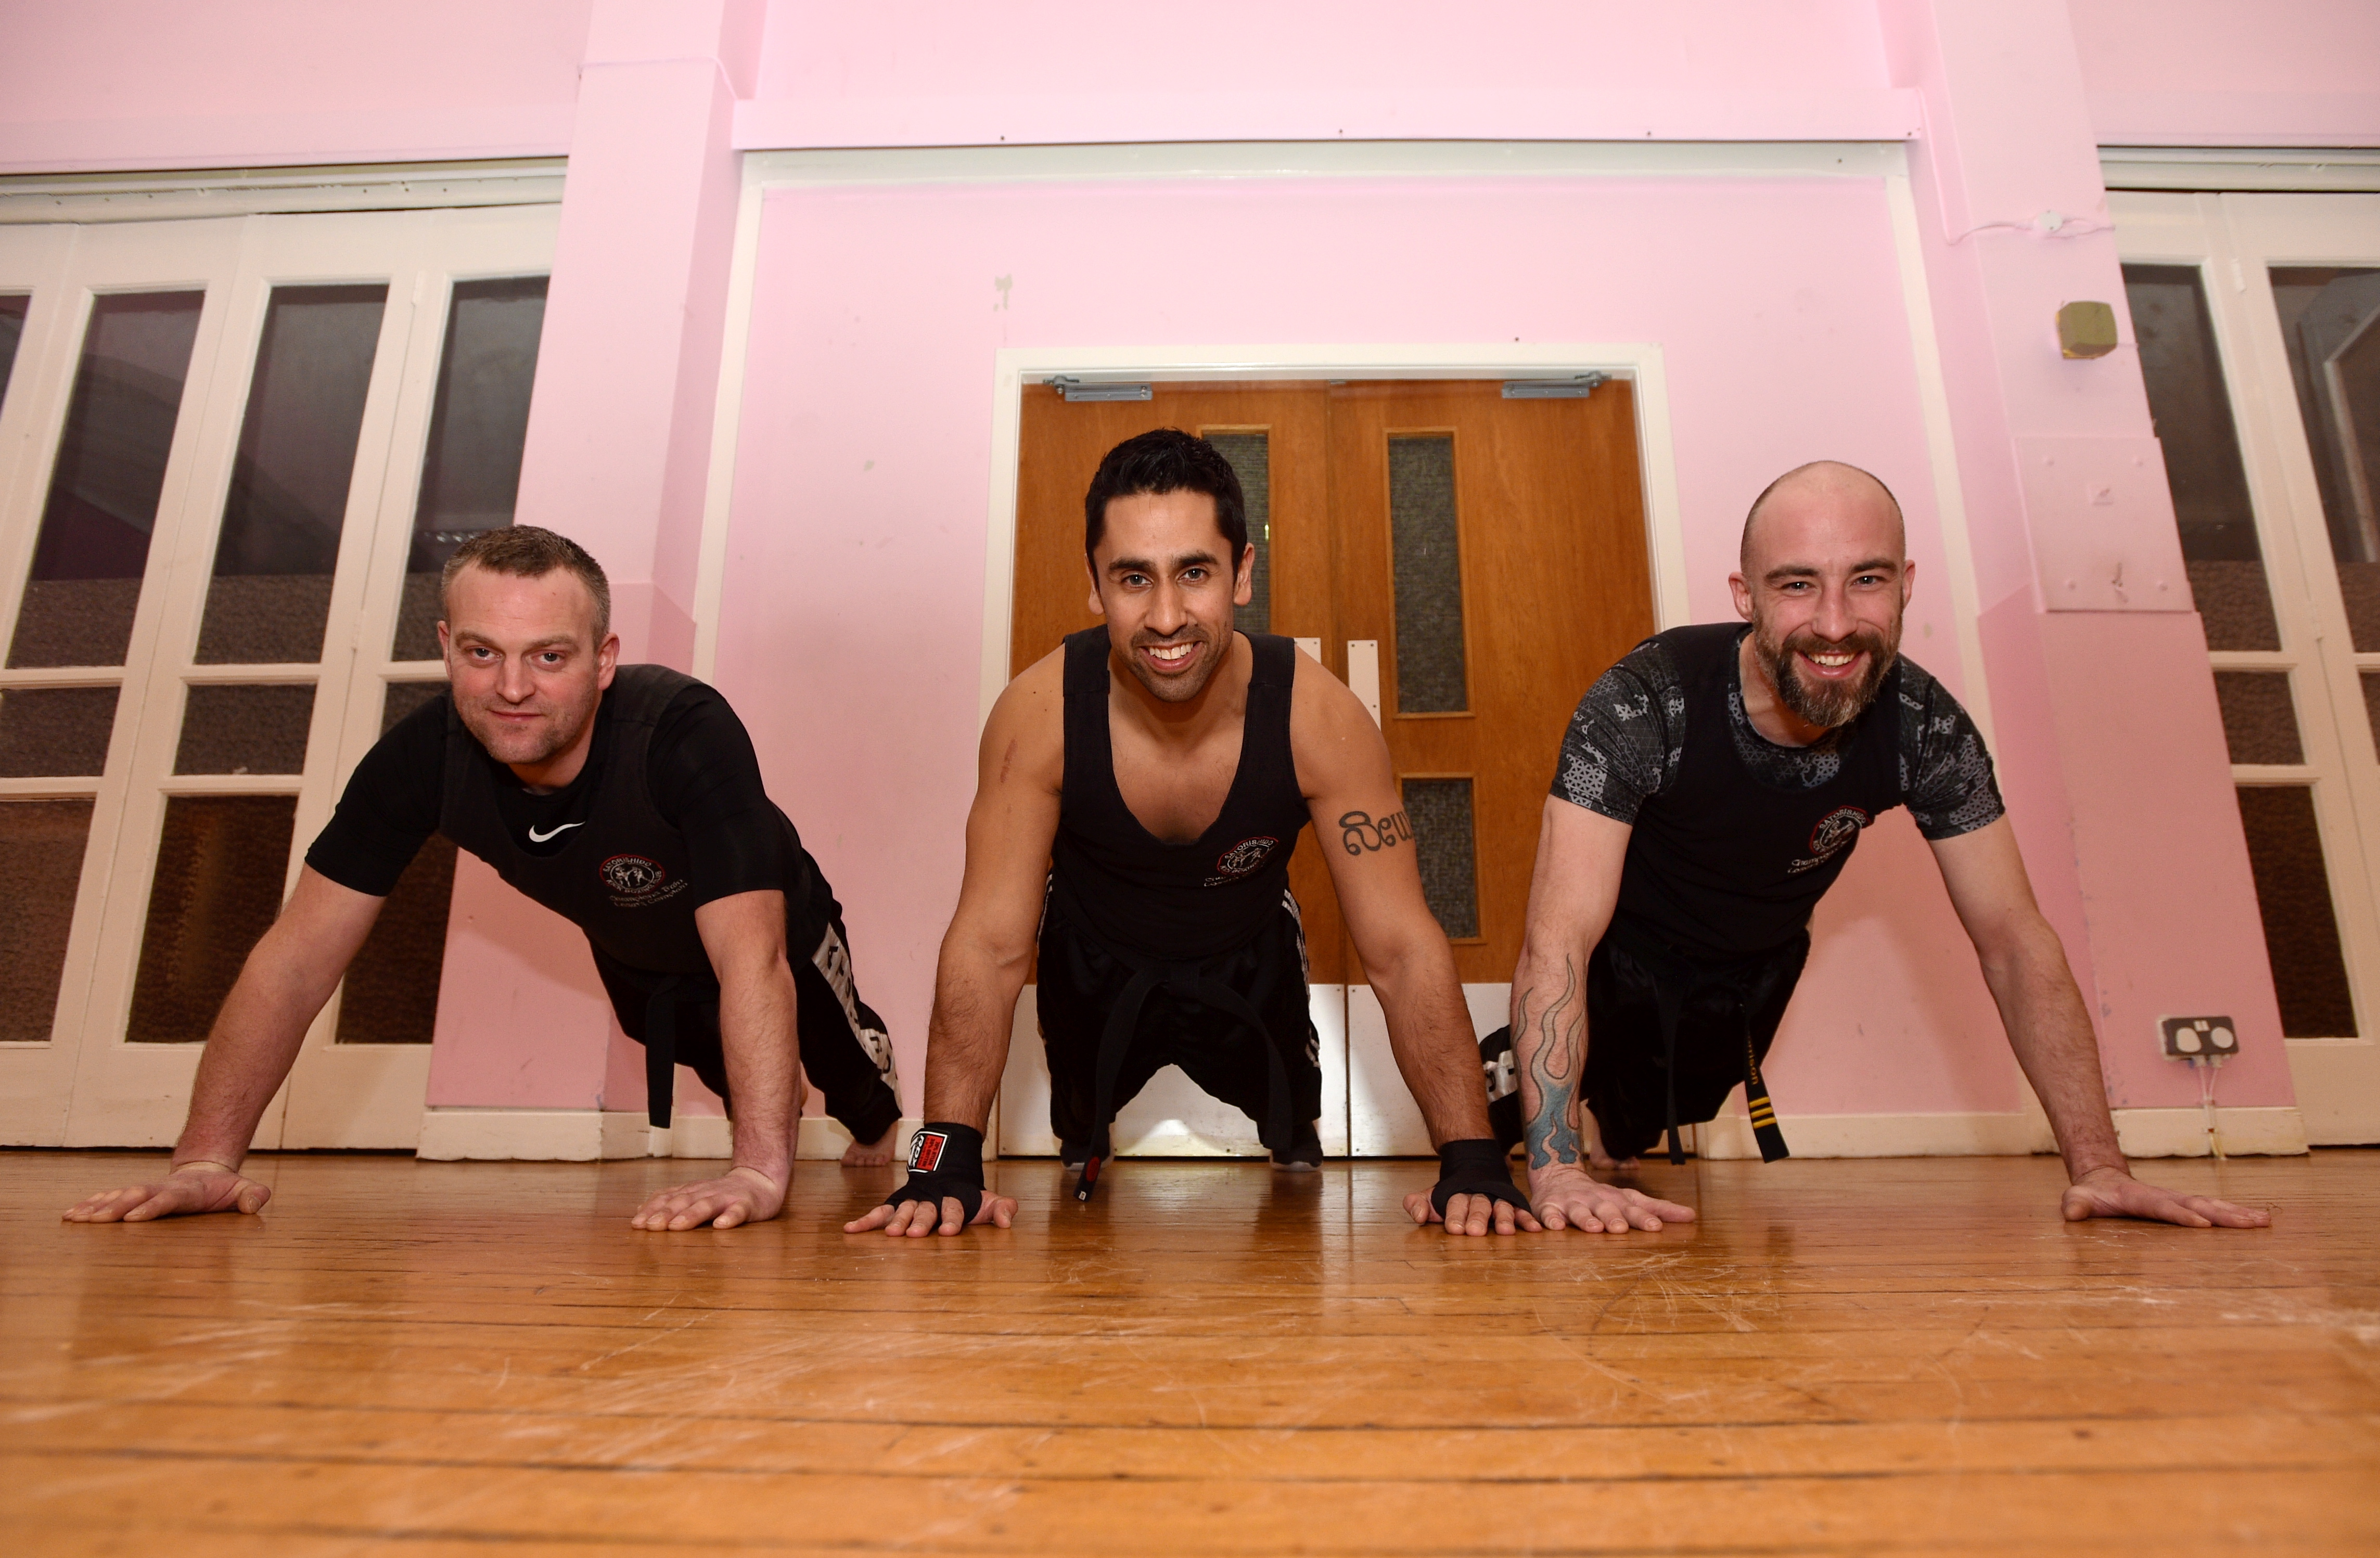 Pictured are from left, David Krasjuk, Leon Bremaneson and Douglas Morrison at Mastrick Community Centre, Aberdeen. Picture by Darrell Benns